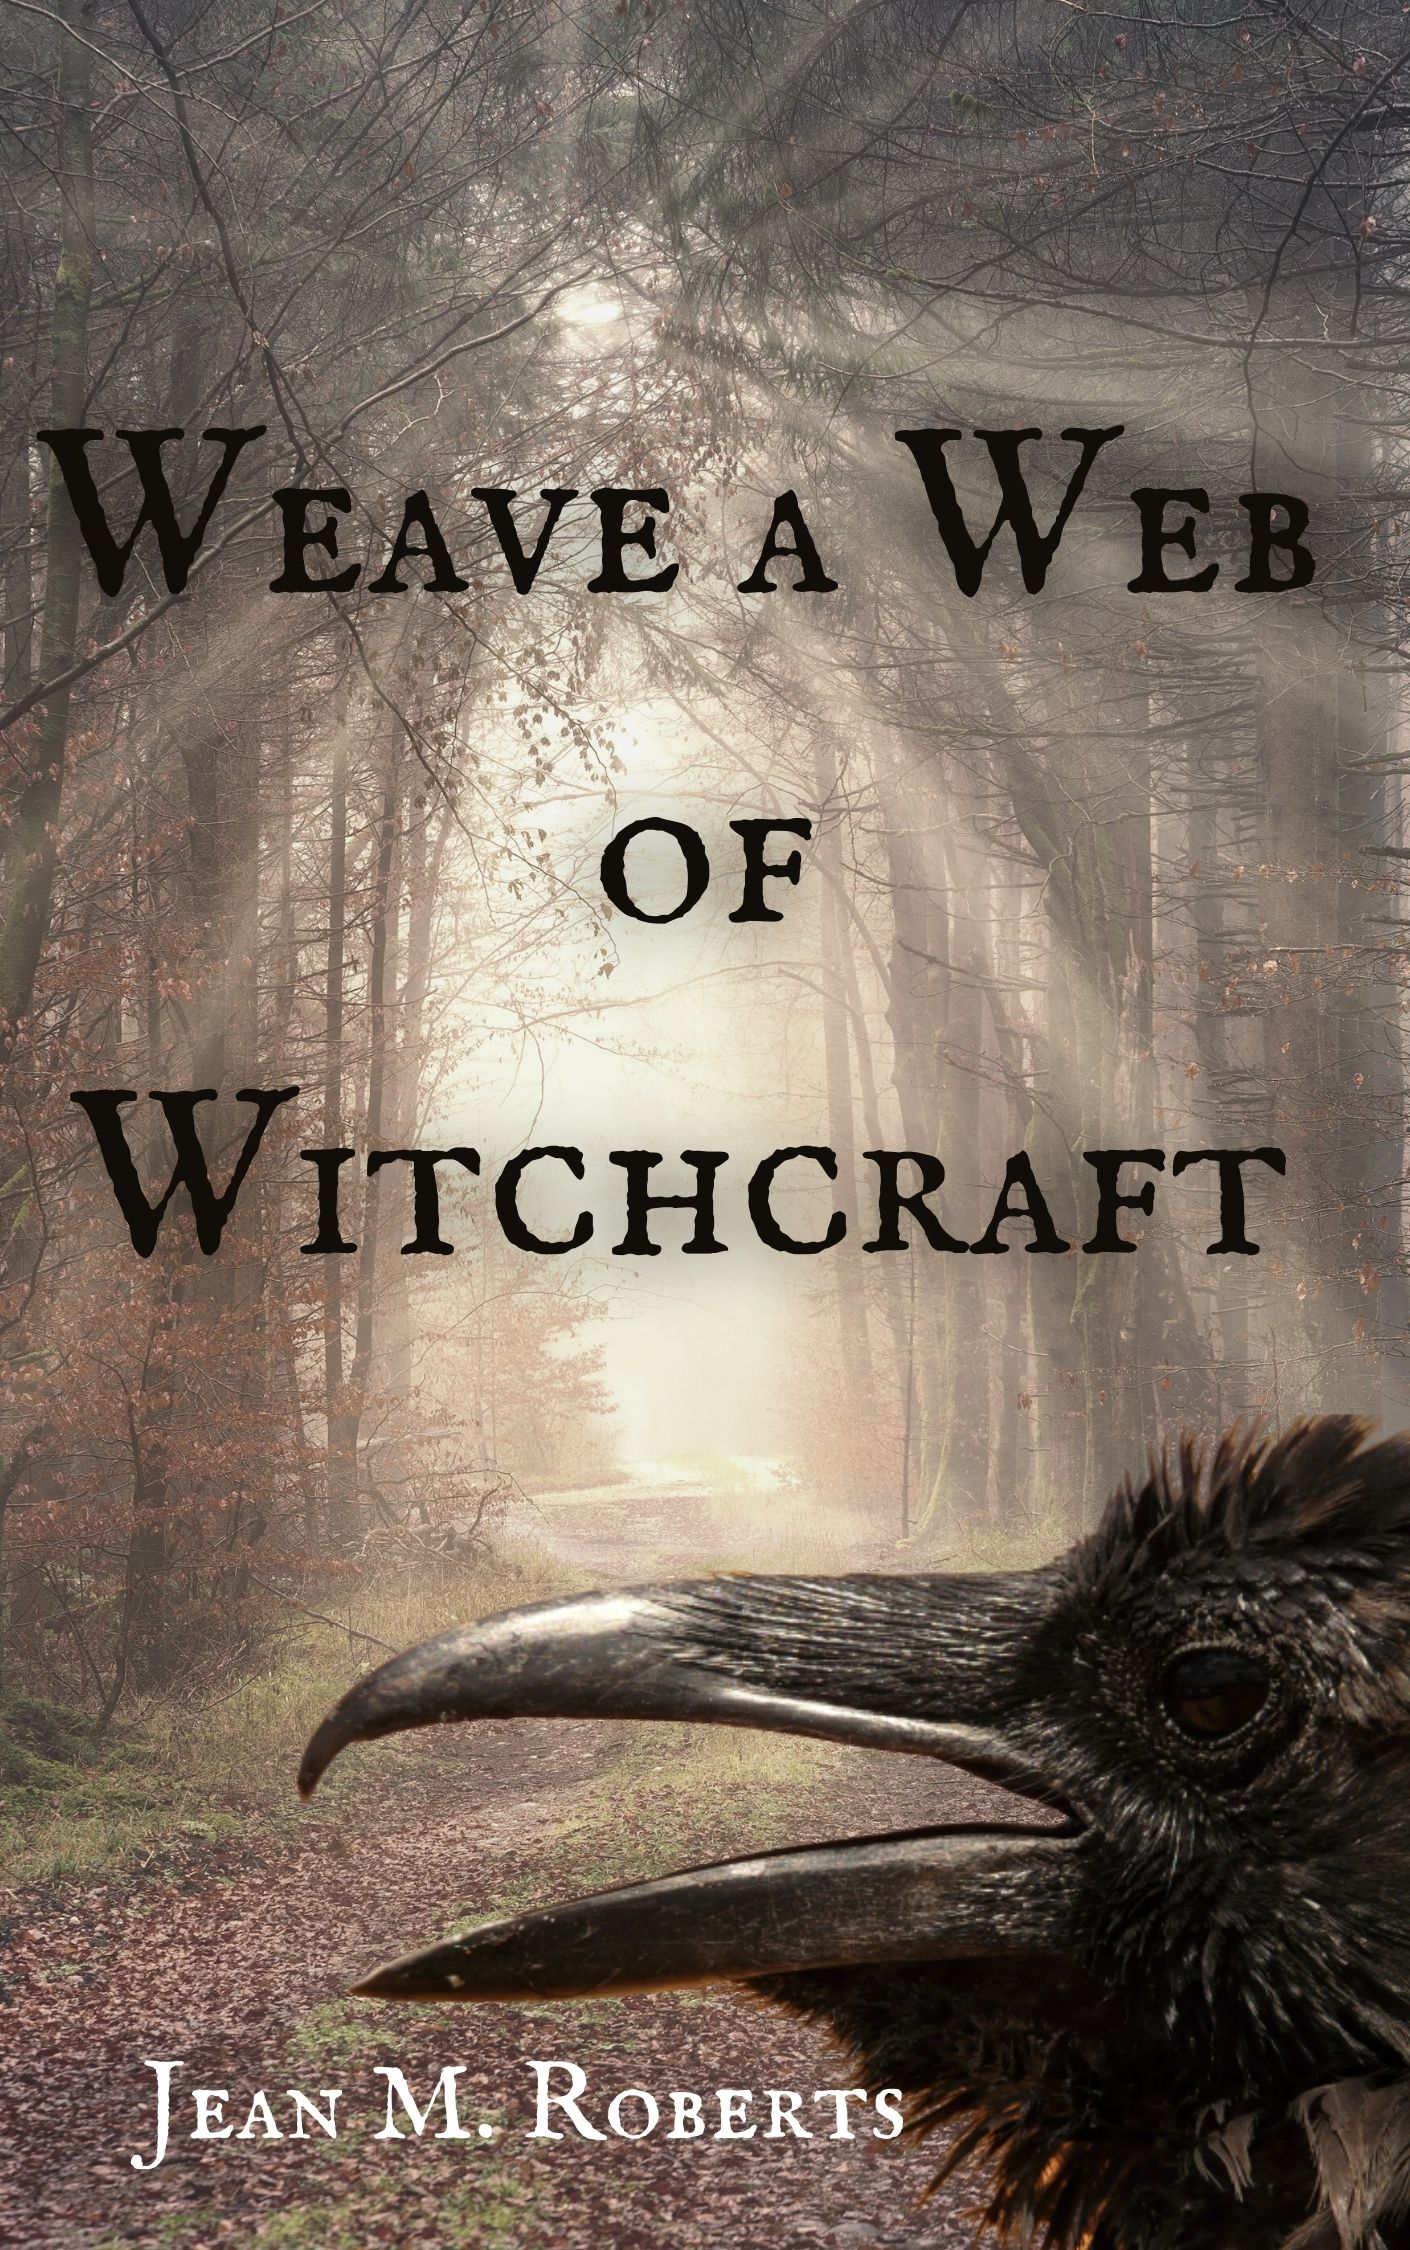 Weave a Web of Witchcraft by Jean M. Roberts